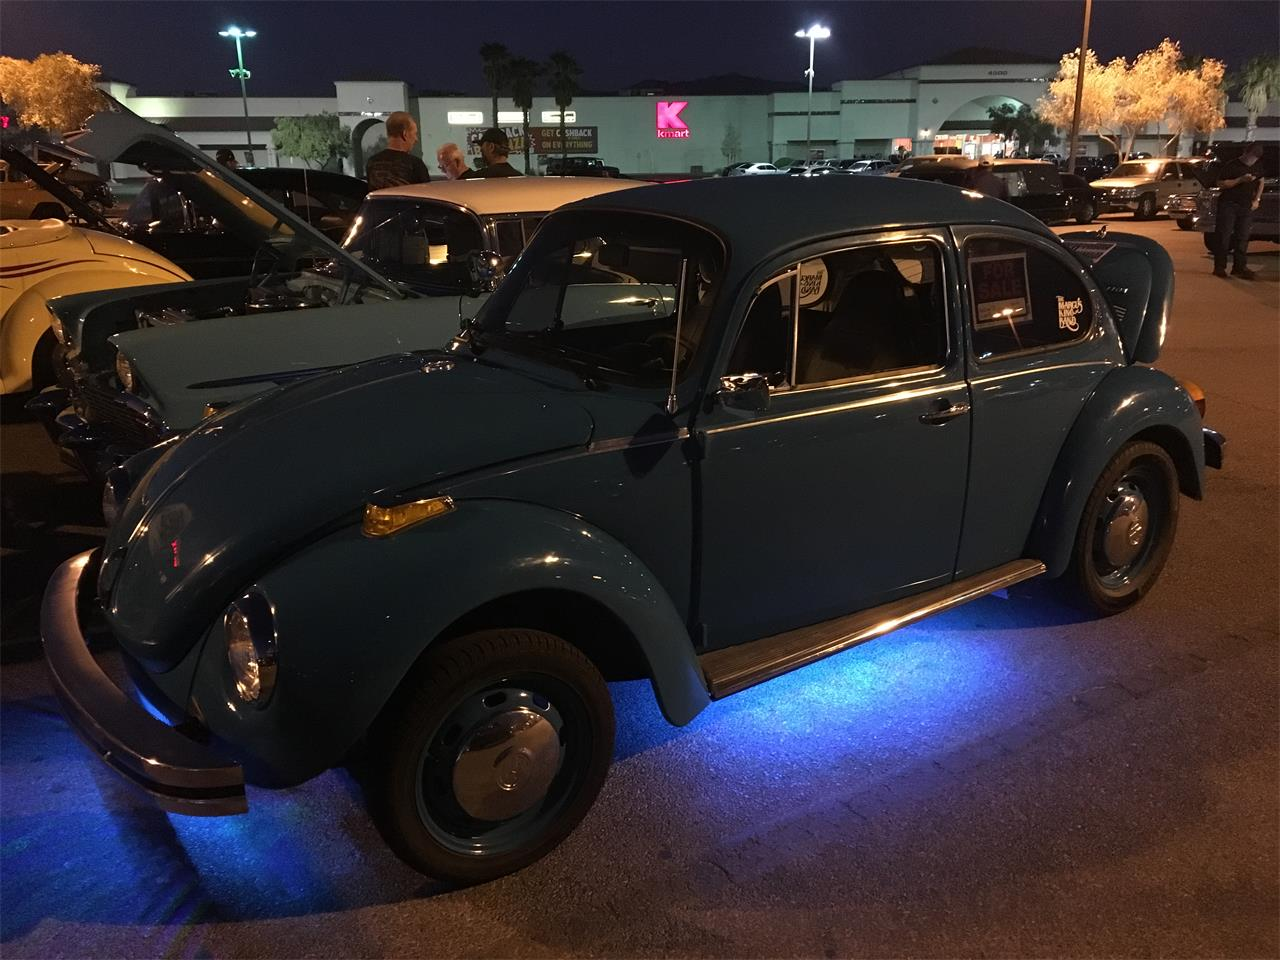 1973 Volkswagen Super Beetle (CC-1239014) for sale in North Las Vegas, Nevada